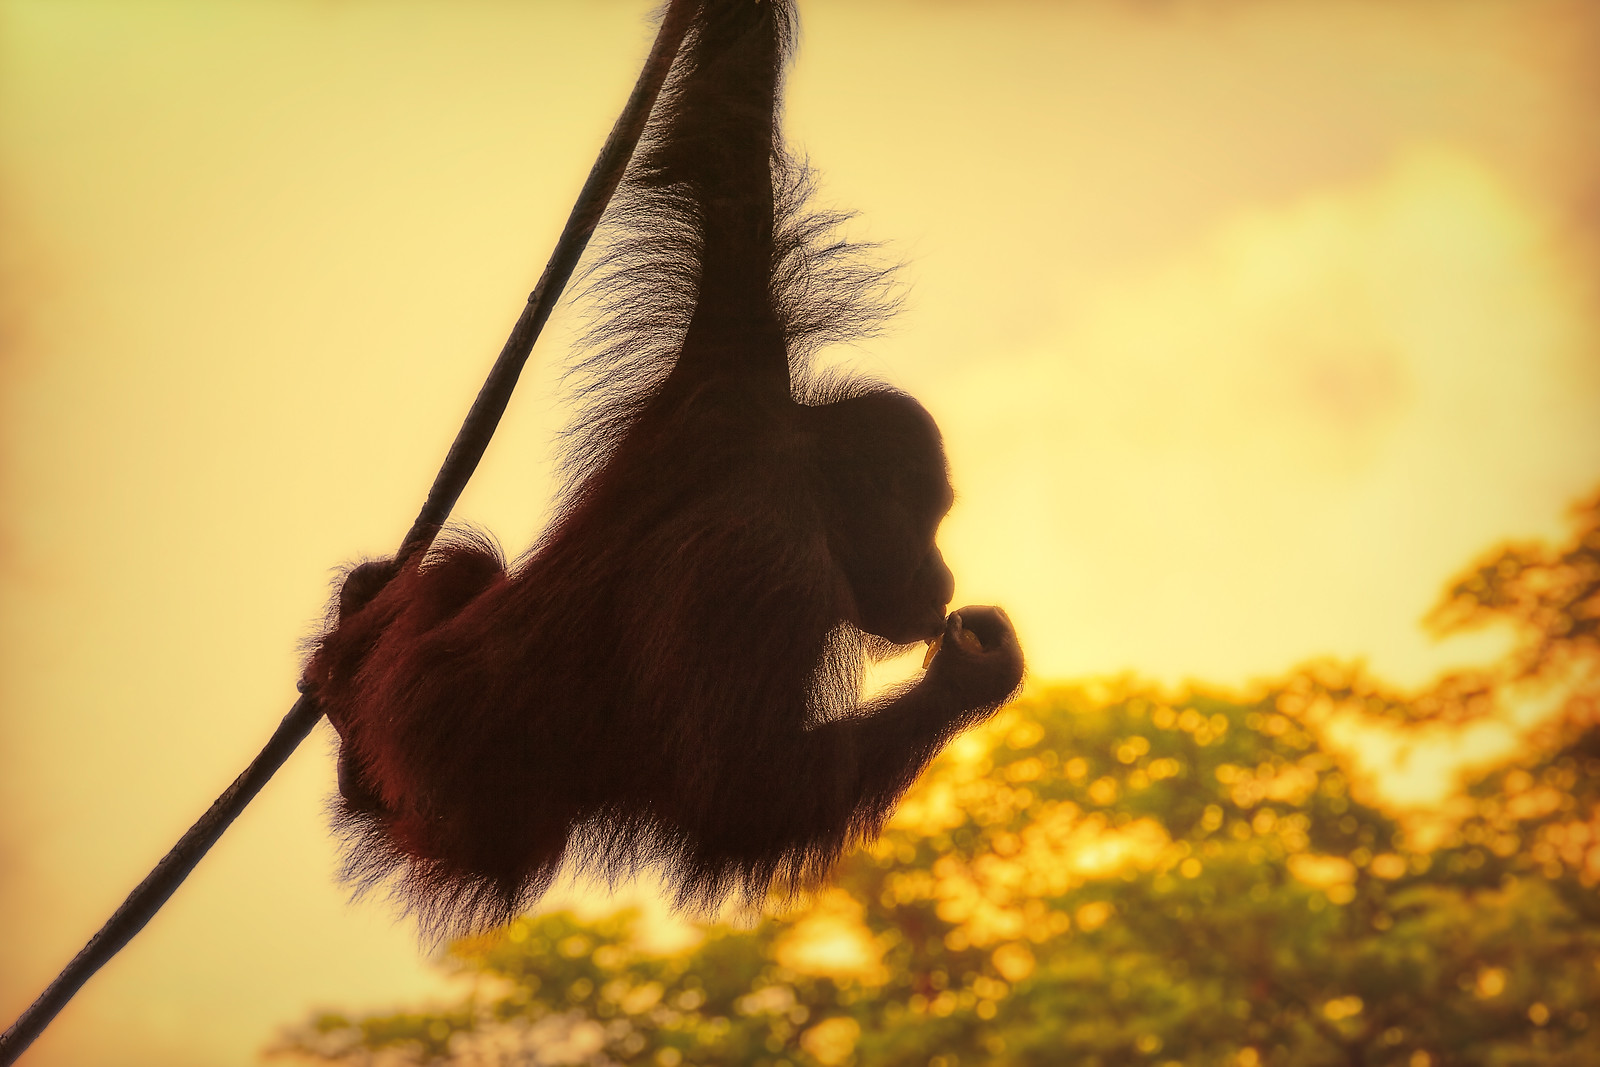 Silhouette of an Orangutan